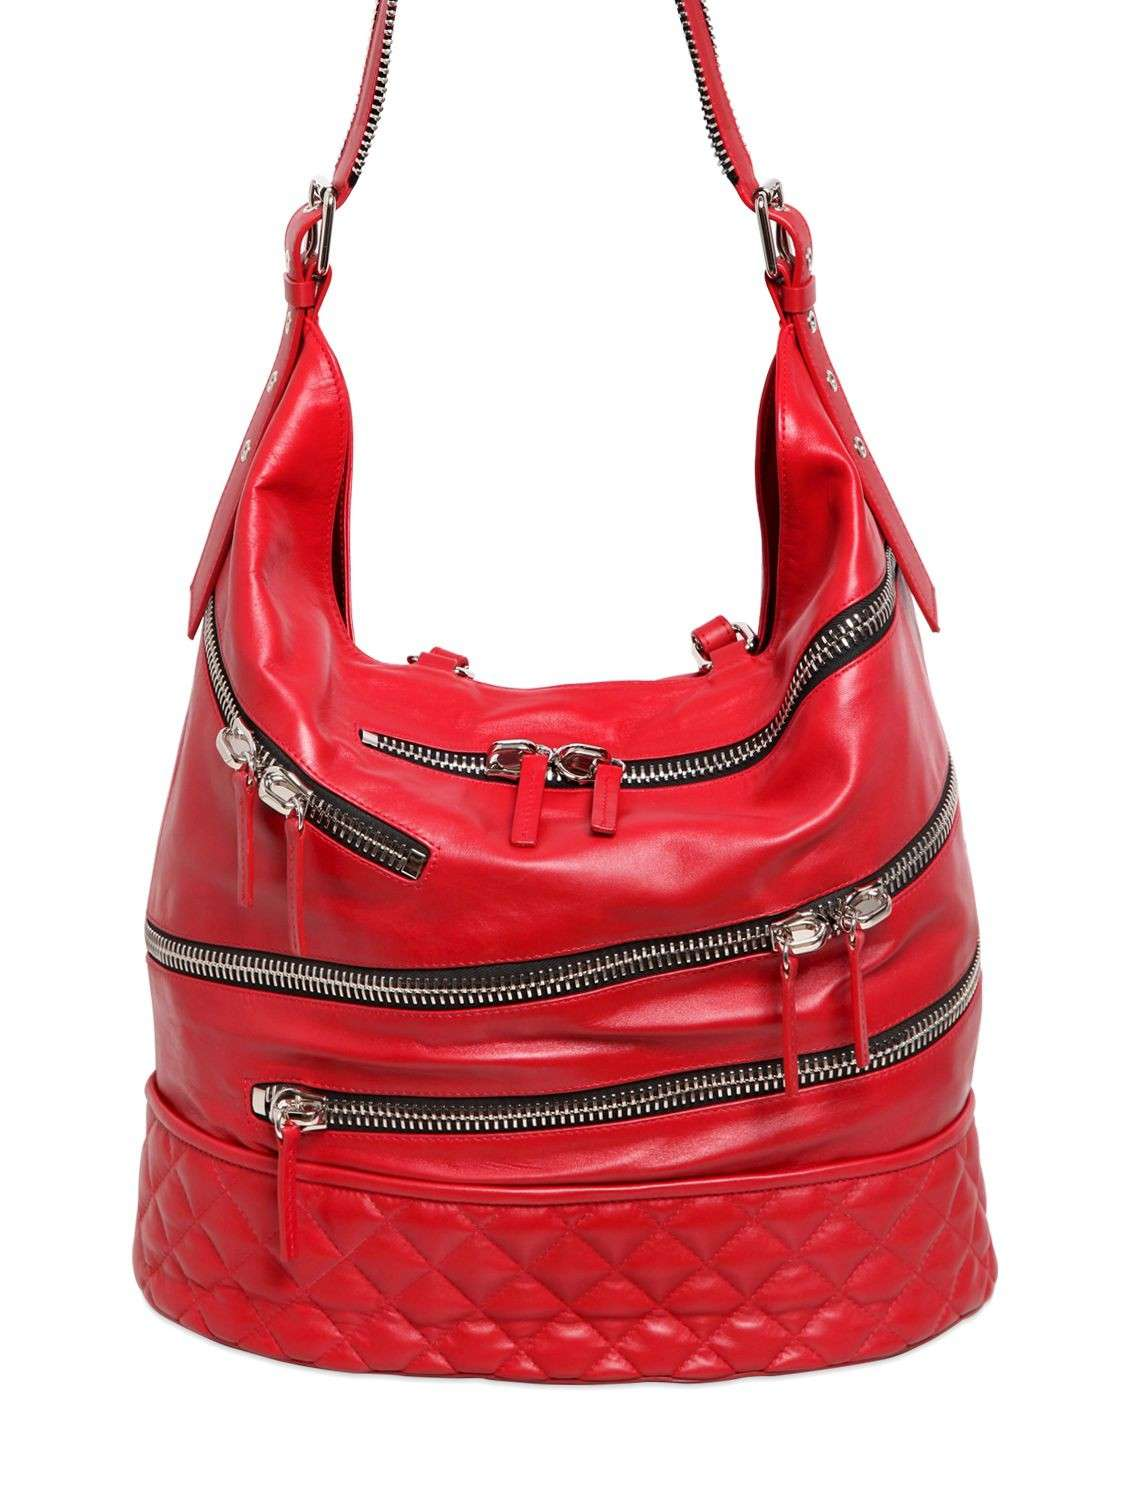 Shoulder bag sporty chic Giuseppe Zanotti